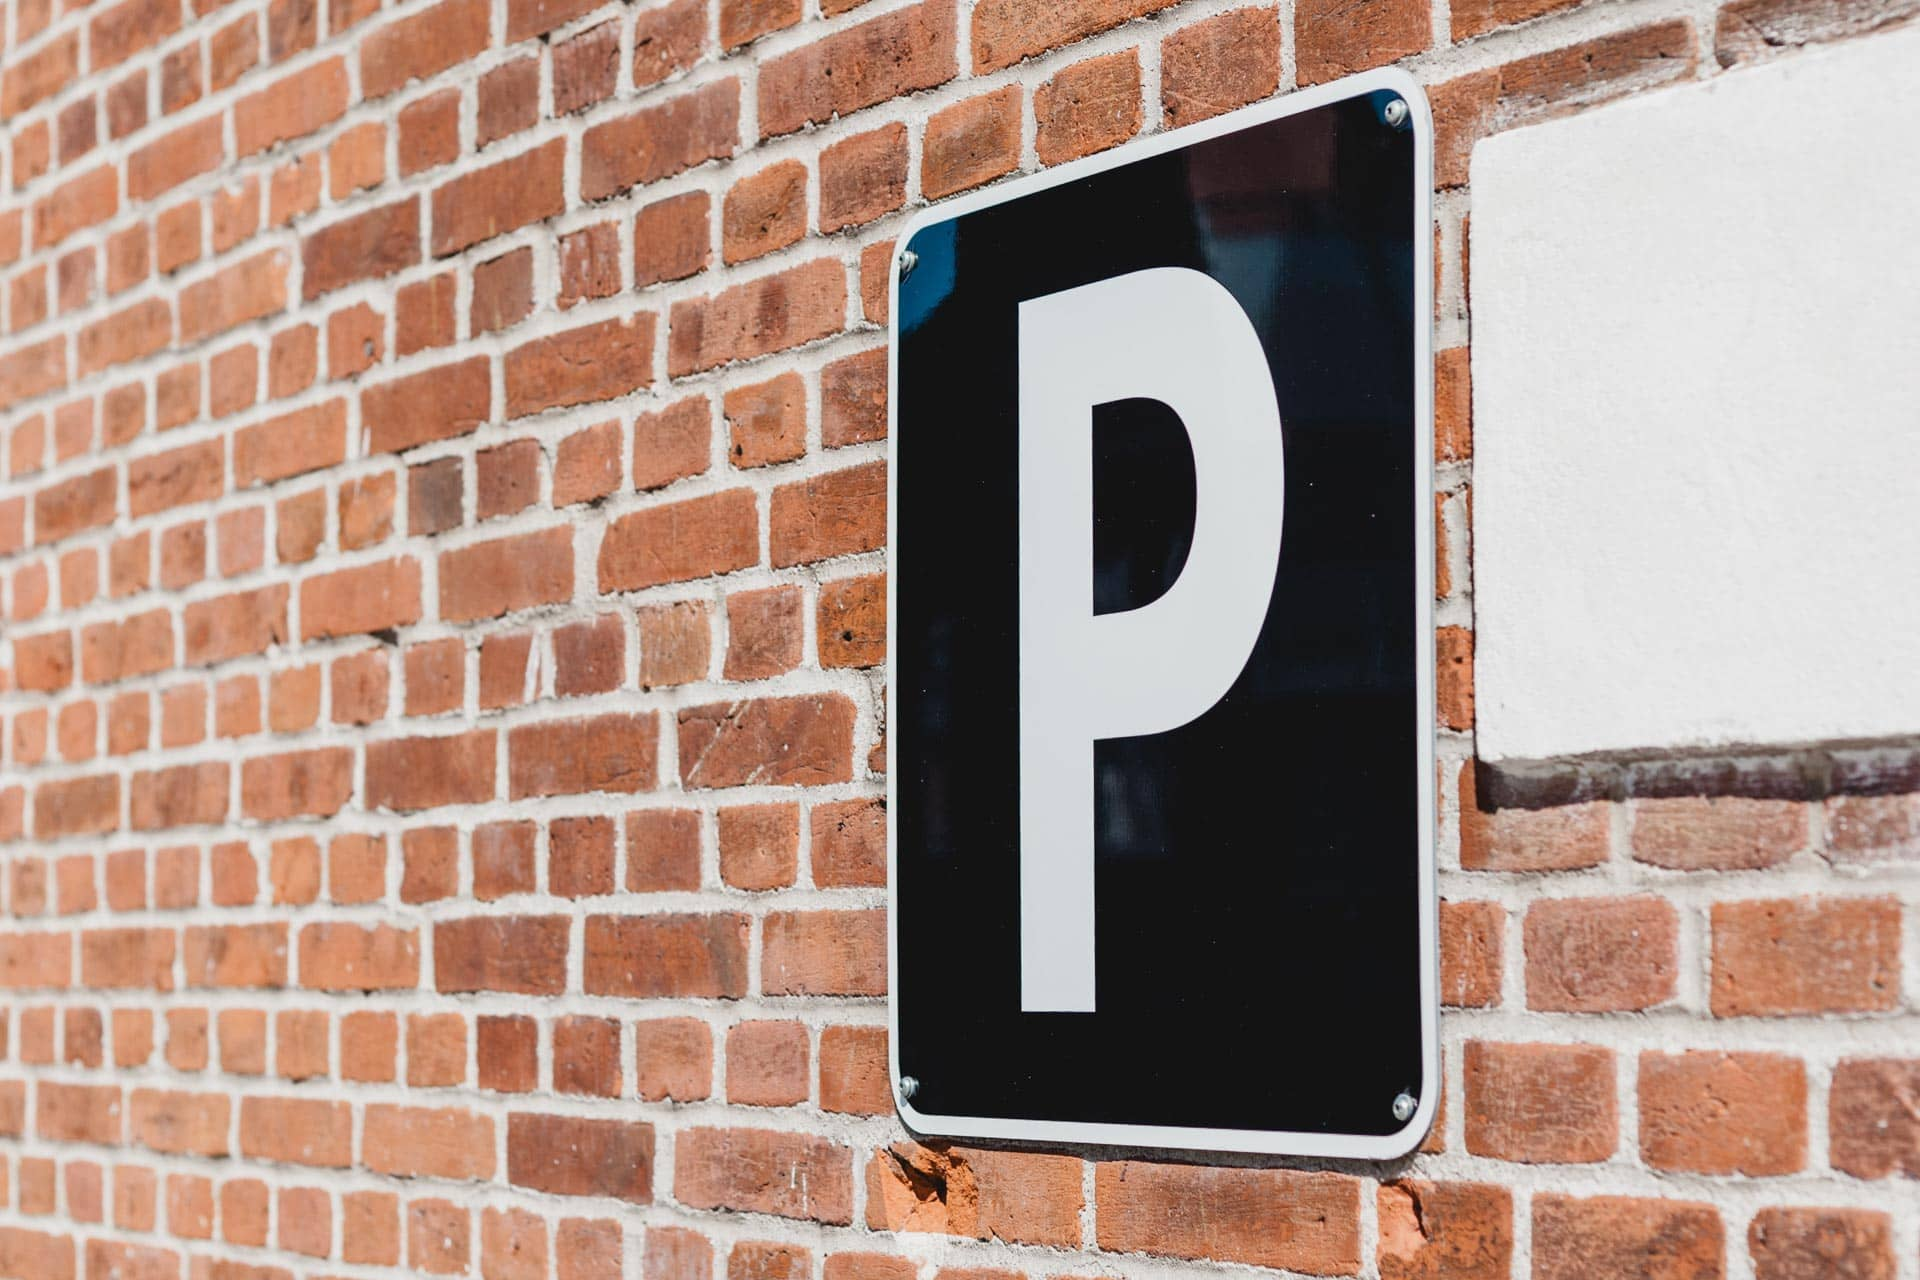 Council to consider steeper penalties for parking ordinance violations Thursday